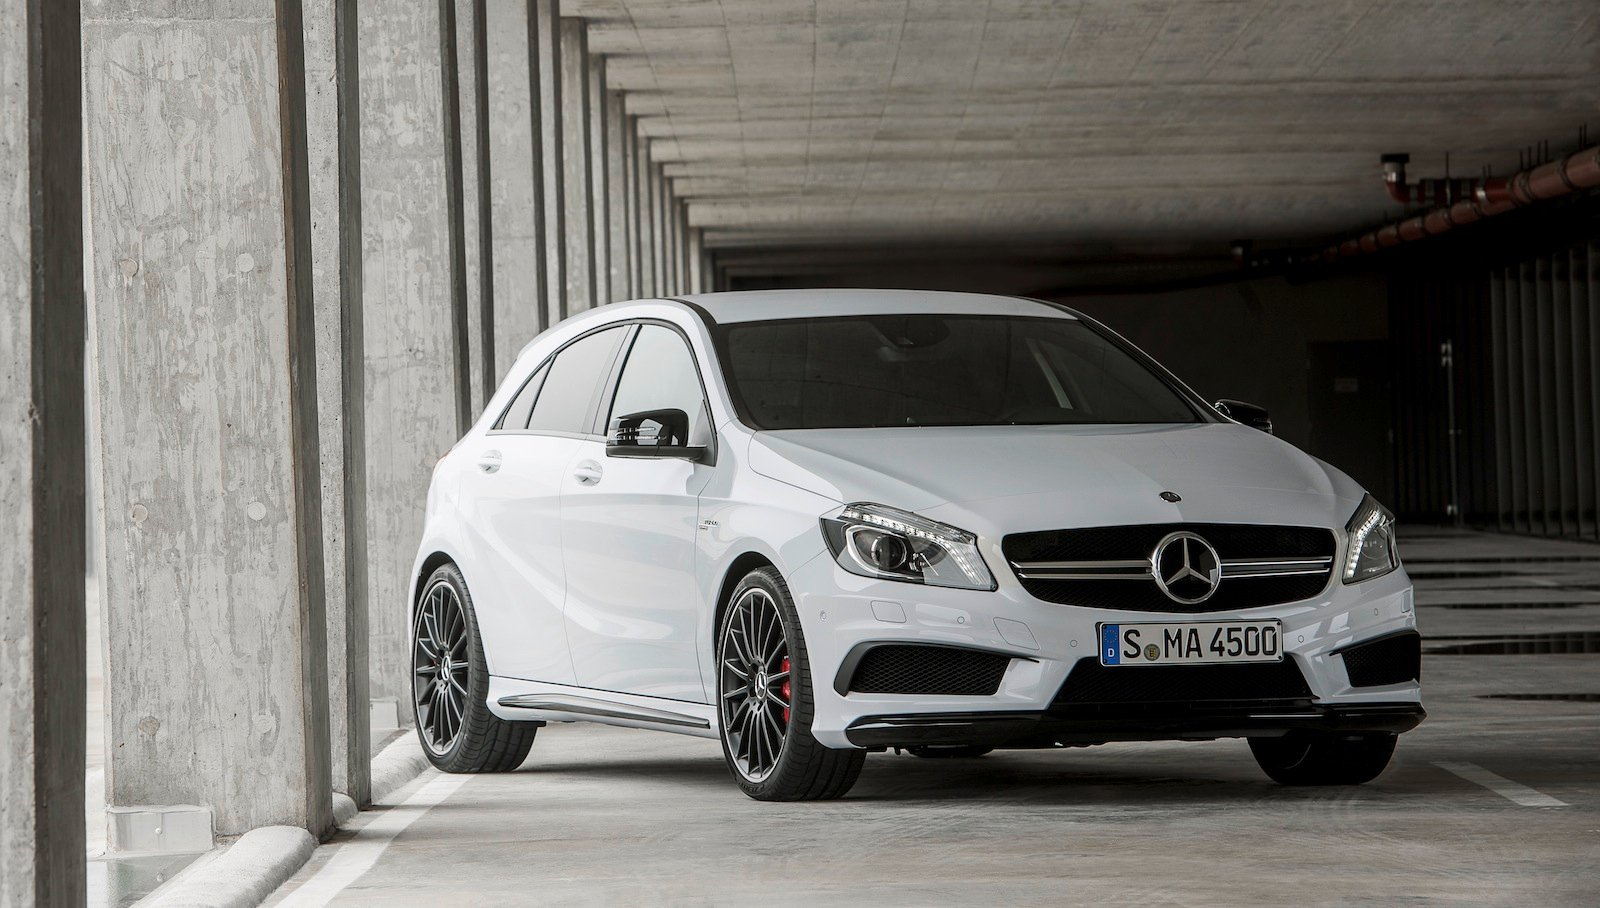 Mercedes Benz A45 Amg 265kw Hot Hatch Unleashed Photos